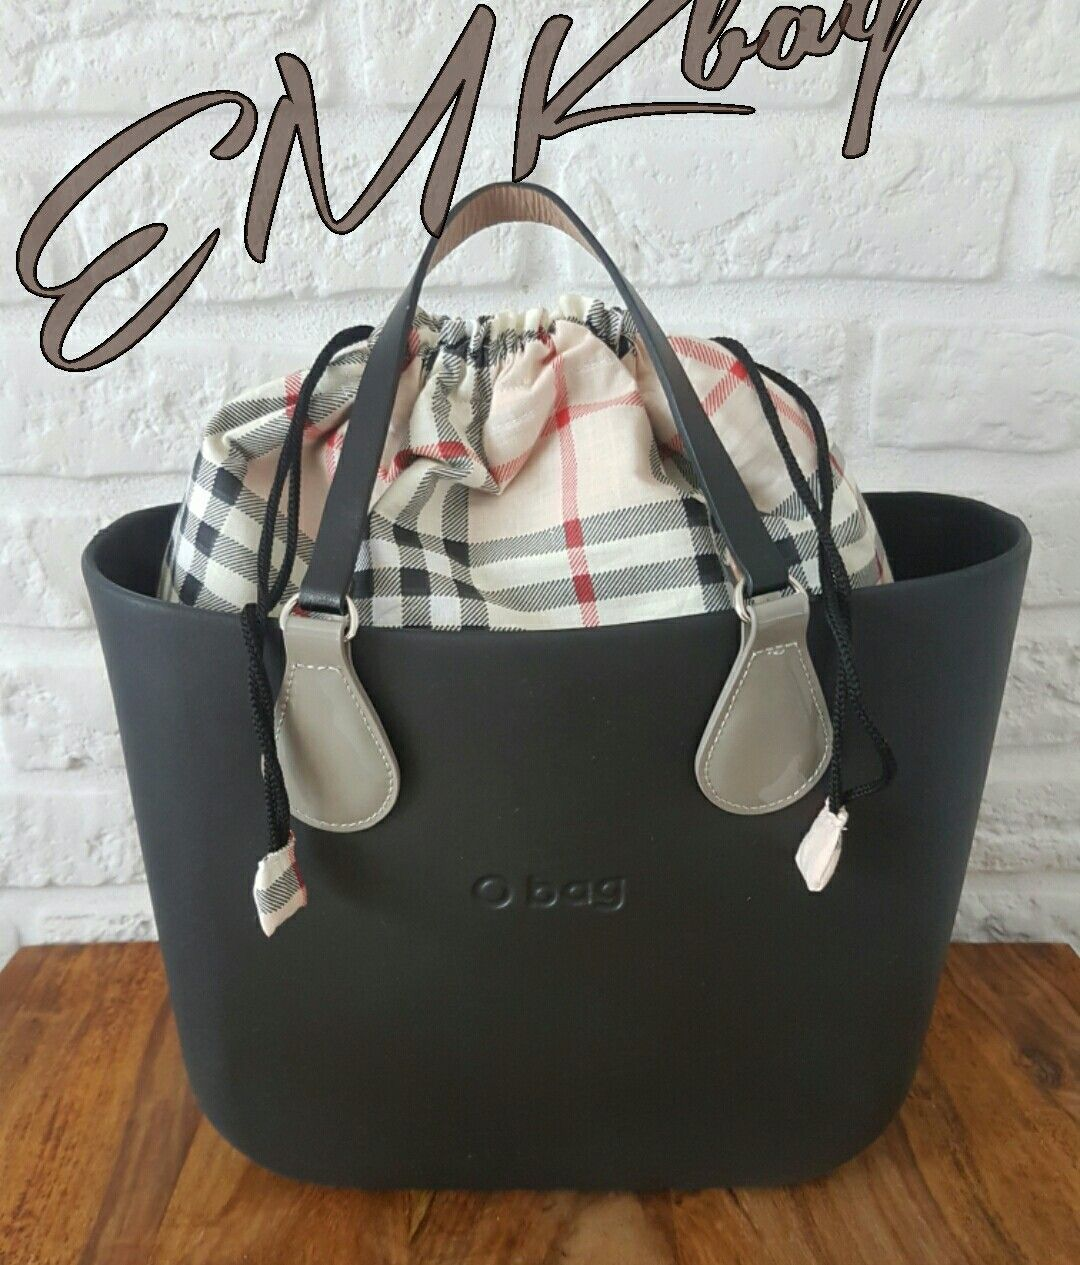 obag  o bag  nero  burberry  emkbag  mini   Purse   Pinterest   Bags ... ff6e785887